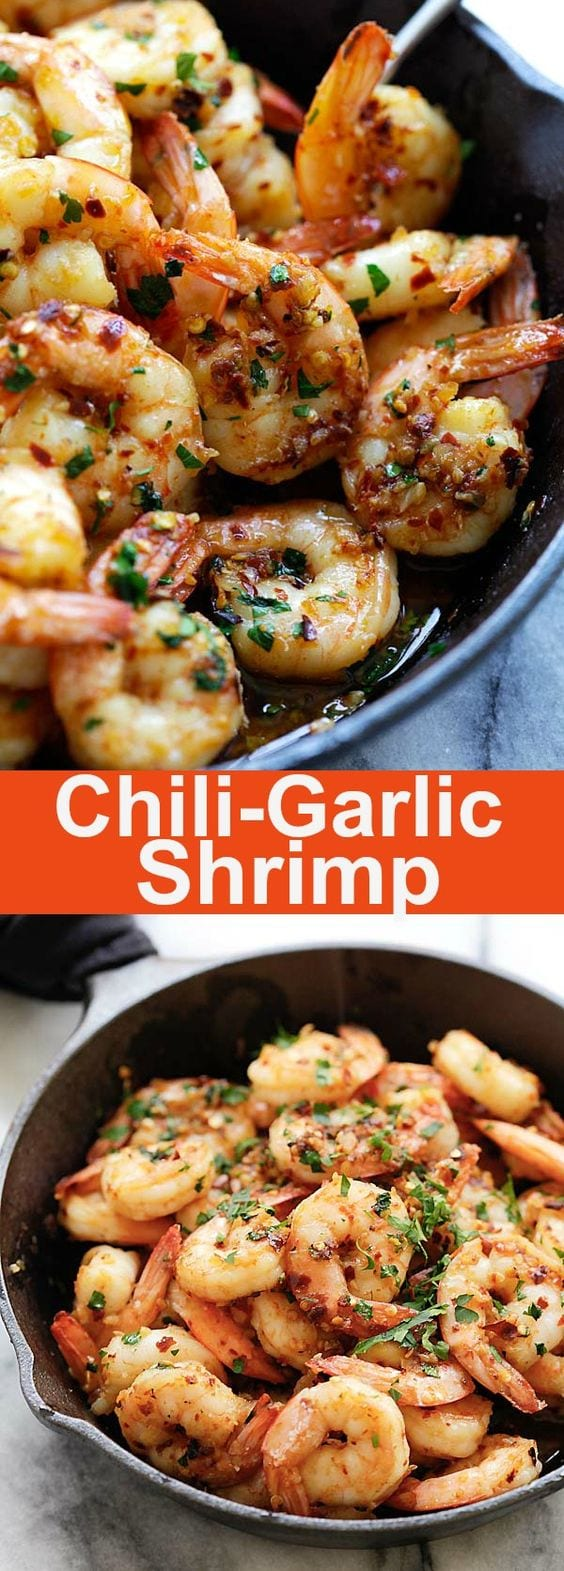 Chili Garlic Shrimp (Gambas Al Ajillo) – the best shrimp appetizer recipe you'll make. This Spanish chili garlic shrimp recipe is the bomb | rasamalaysia.com